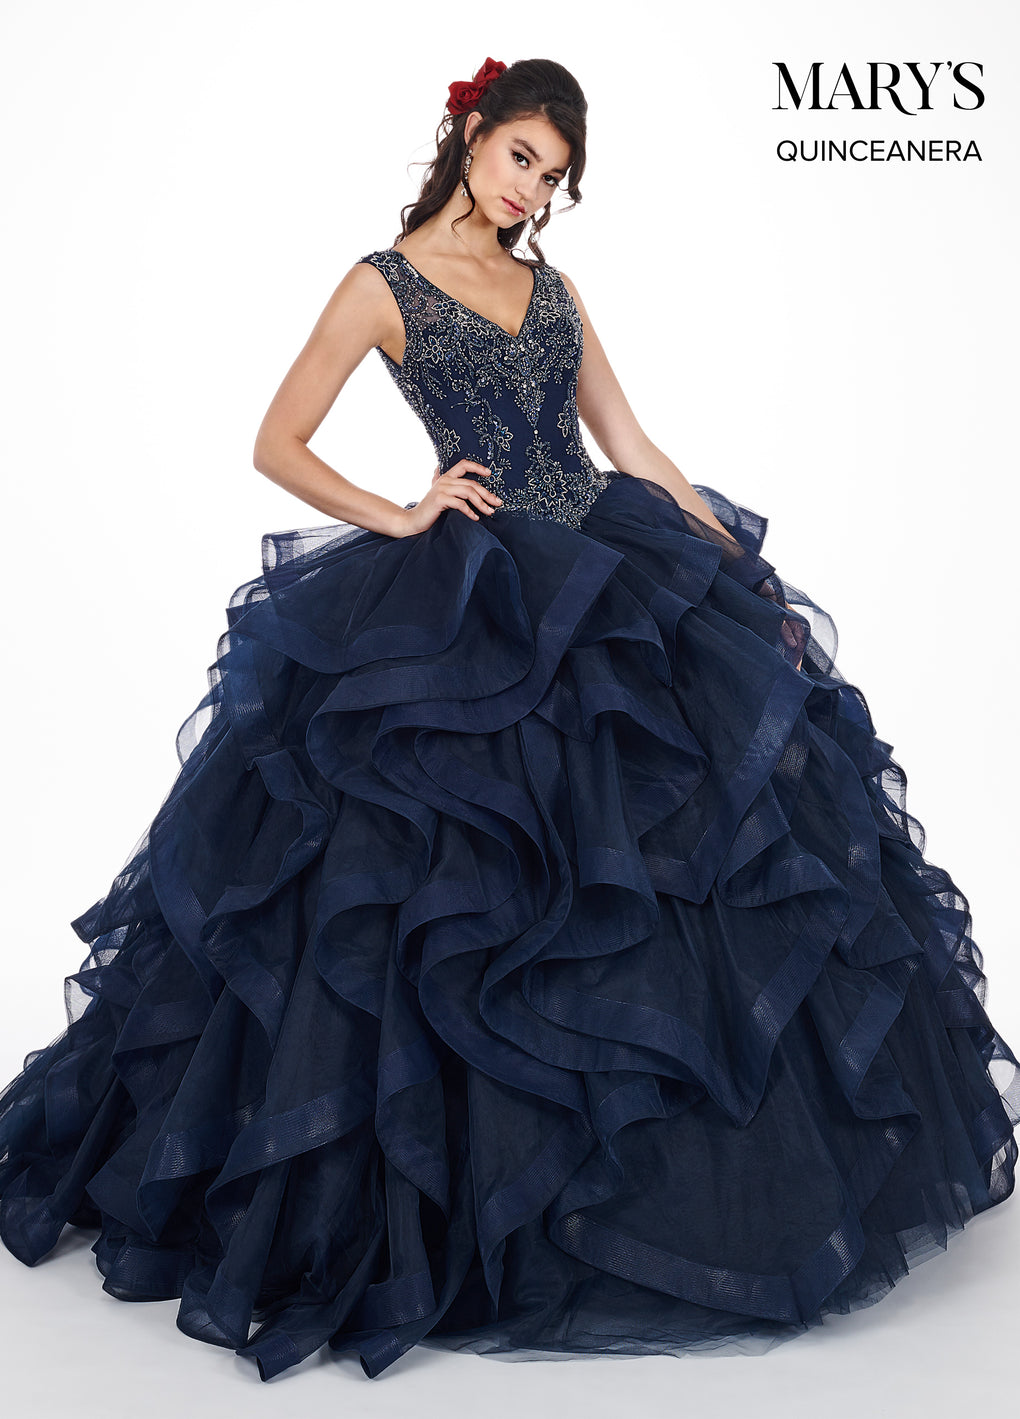 Marys Quinceanera Dresses in Aqua, Midnight Blue, or Blush Color